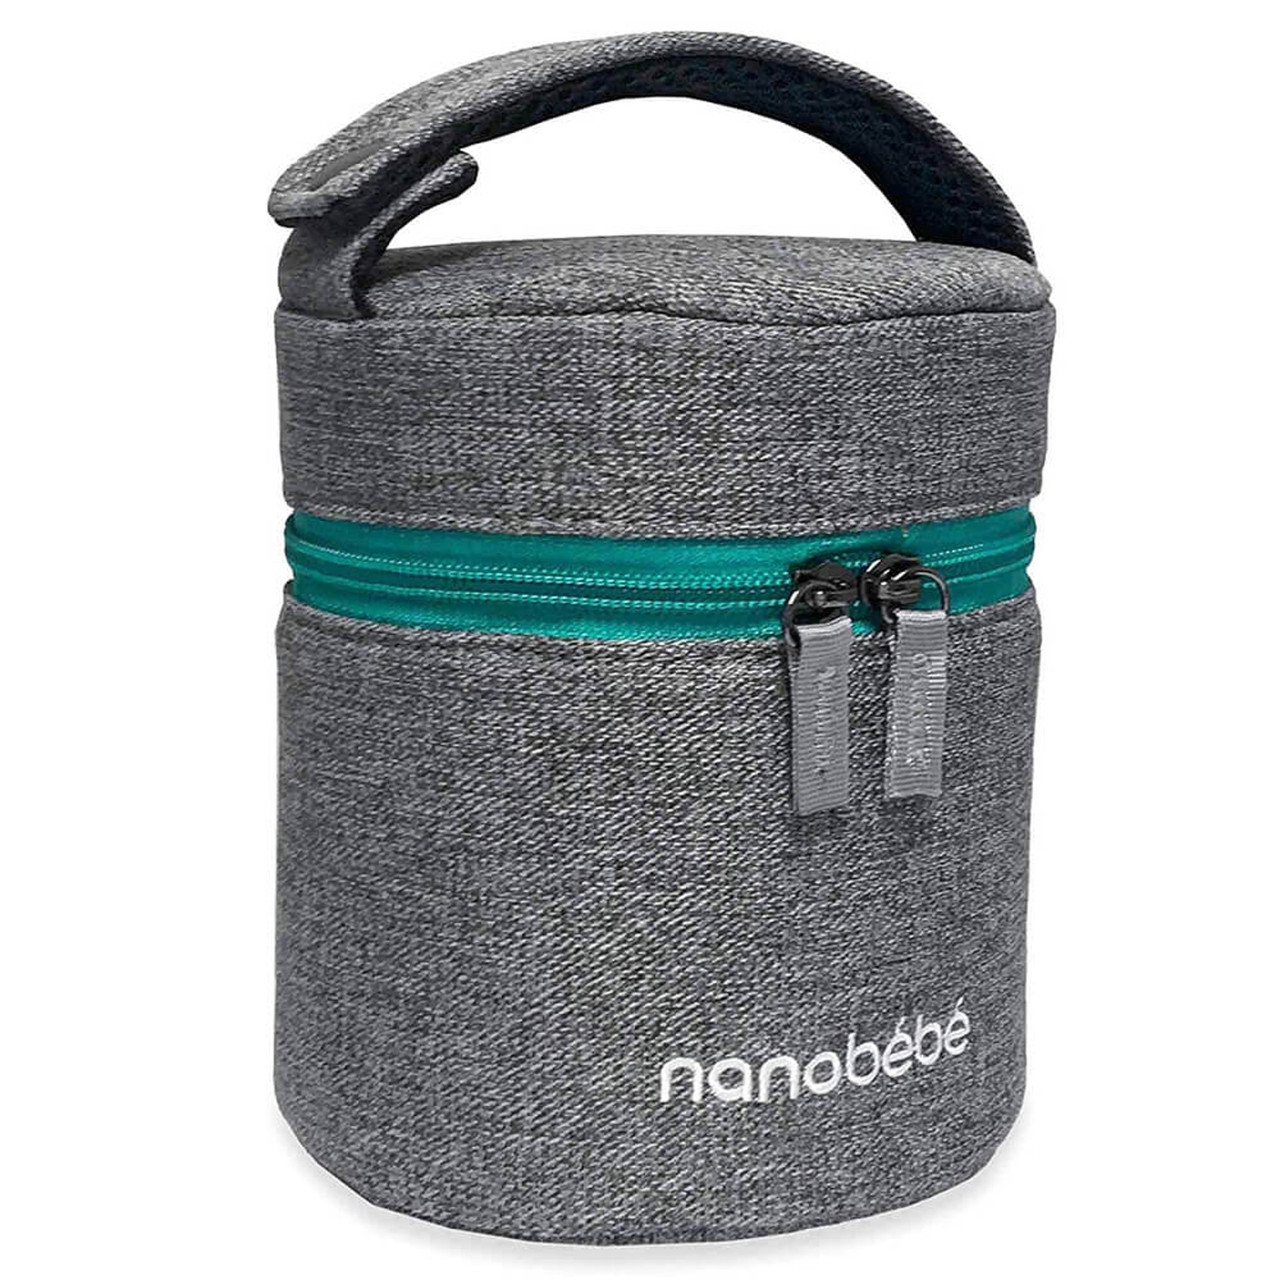 Nanobebe Bottle Cooler and Travel Pack at Baby Barn Discounts Nanobébé stylish, soft-to-the-touch baby bottle carrier makes your daily routine smoother.